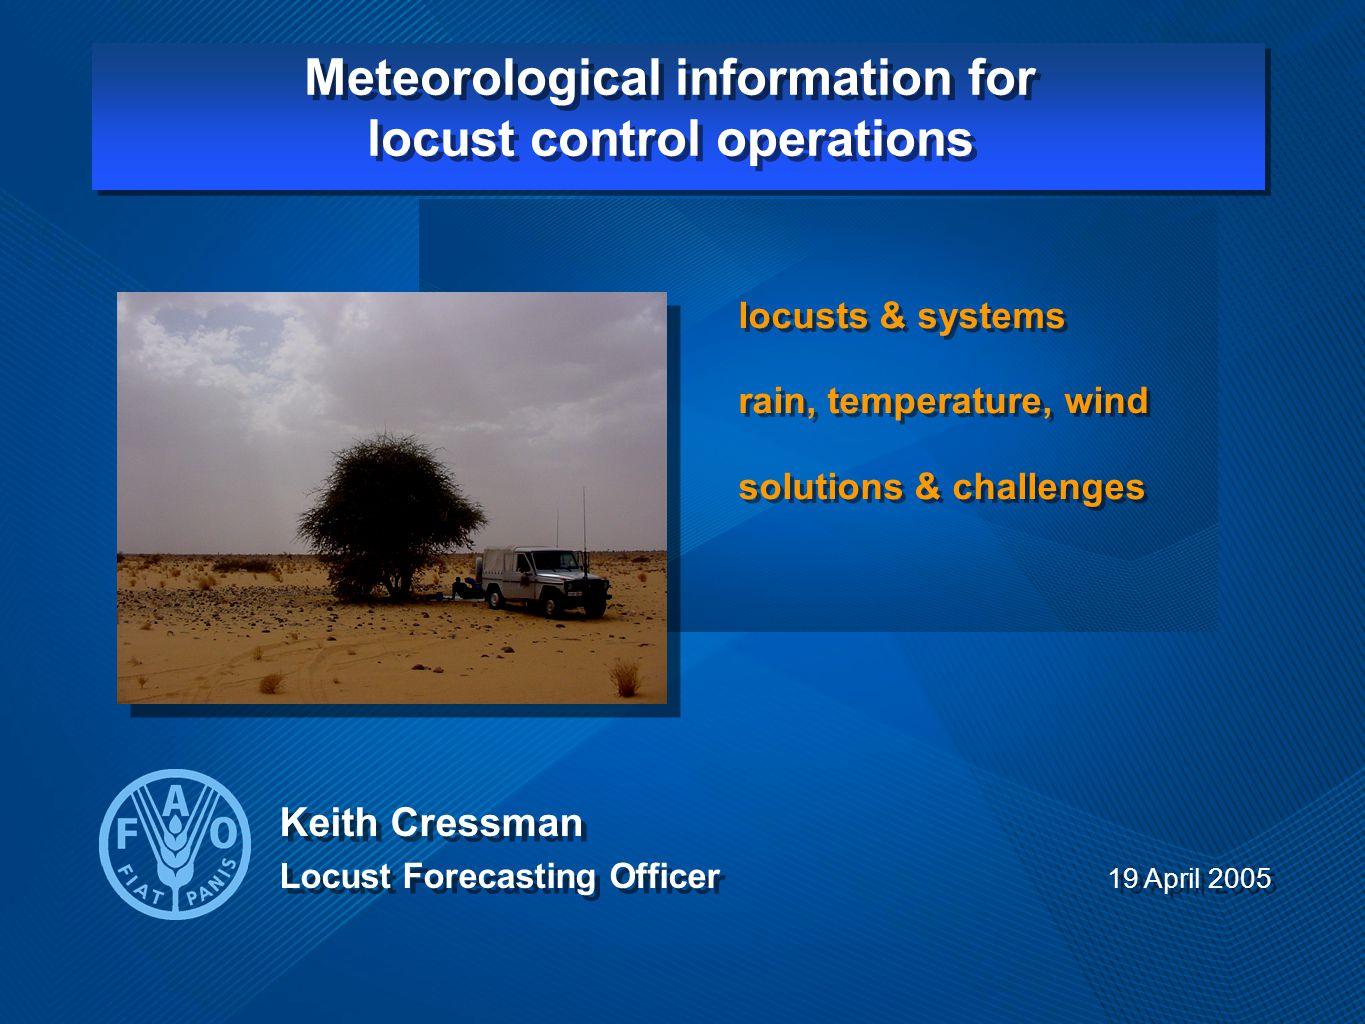 locusts & systems rain, temperature, wind solutions & challenges locusts & systems rain, temperature, wind solutions & challenges Meteorological information for locust control operations Keith Cressman Locust Forecasting Officer 19 April 2005 Keith Cressman Locust Forecasting Officer 19 April 2005